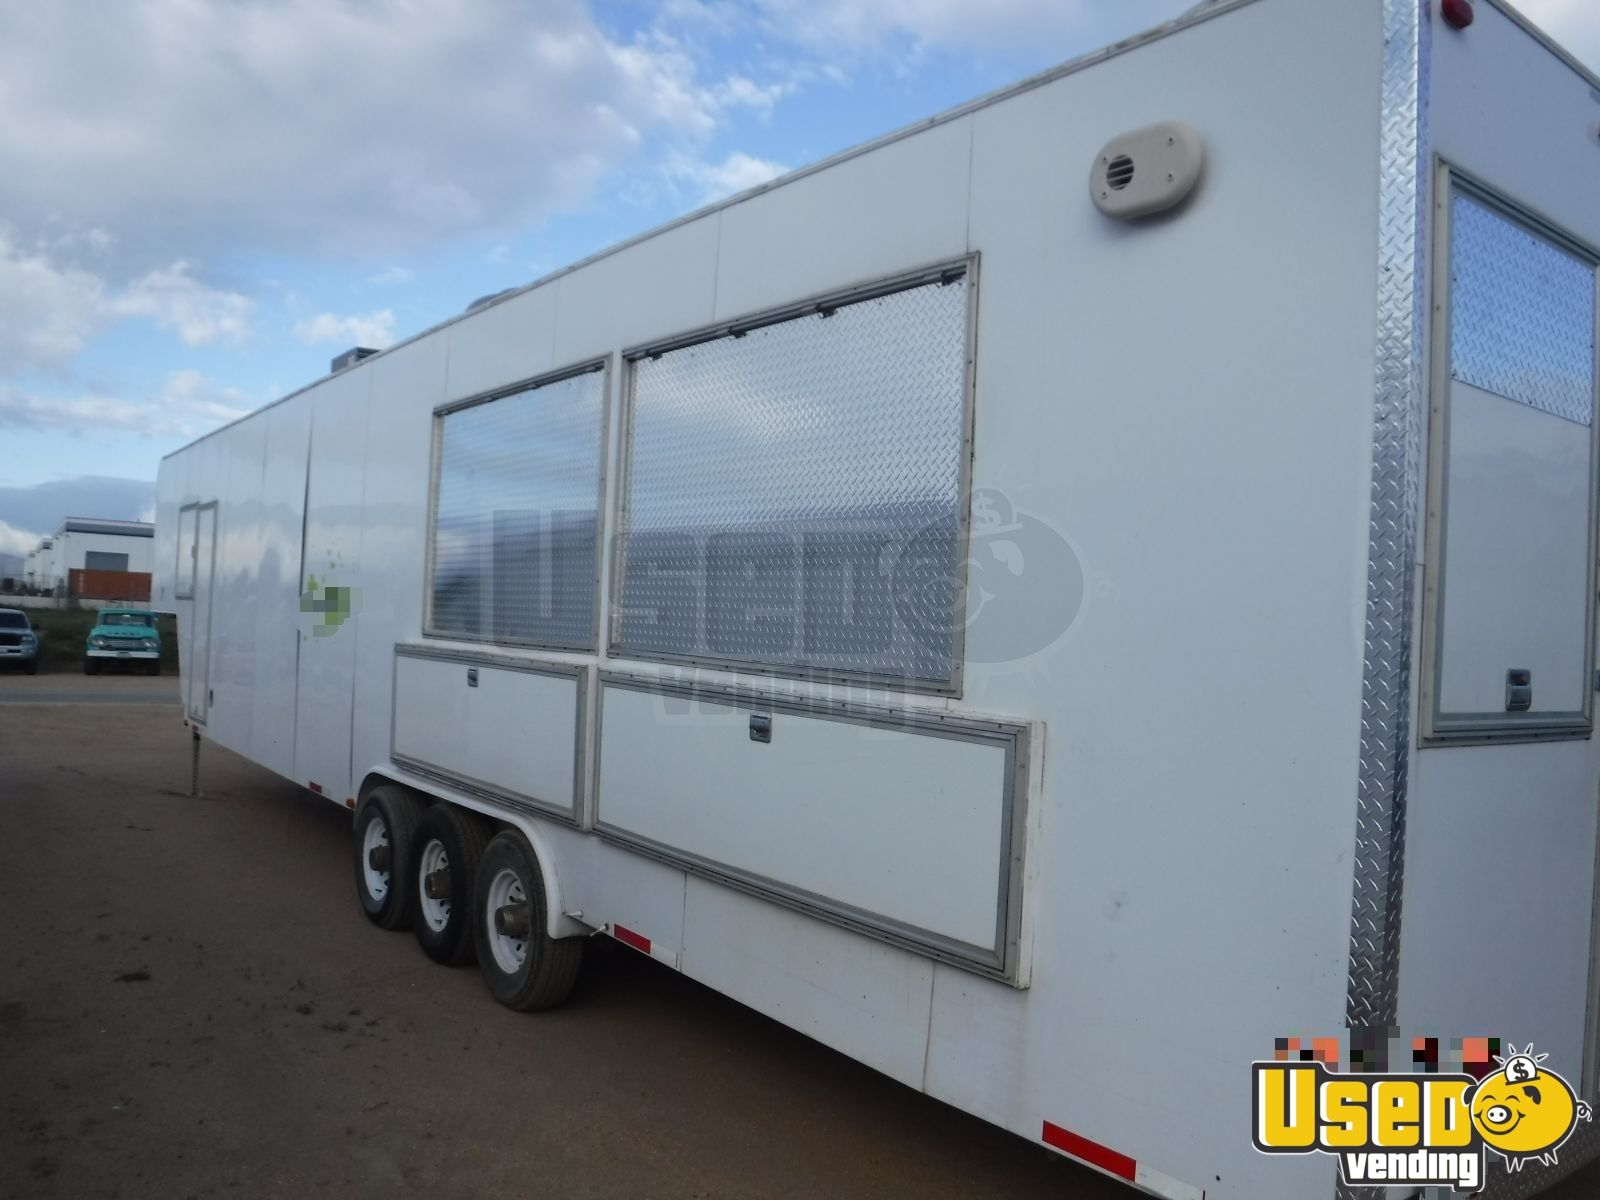 2009 Universal Magnum By California Cart Builder All-purpose Food Trailer Removable Trailer Hitch Colorado for Sale - 5